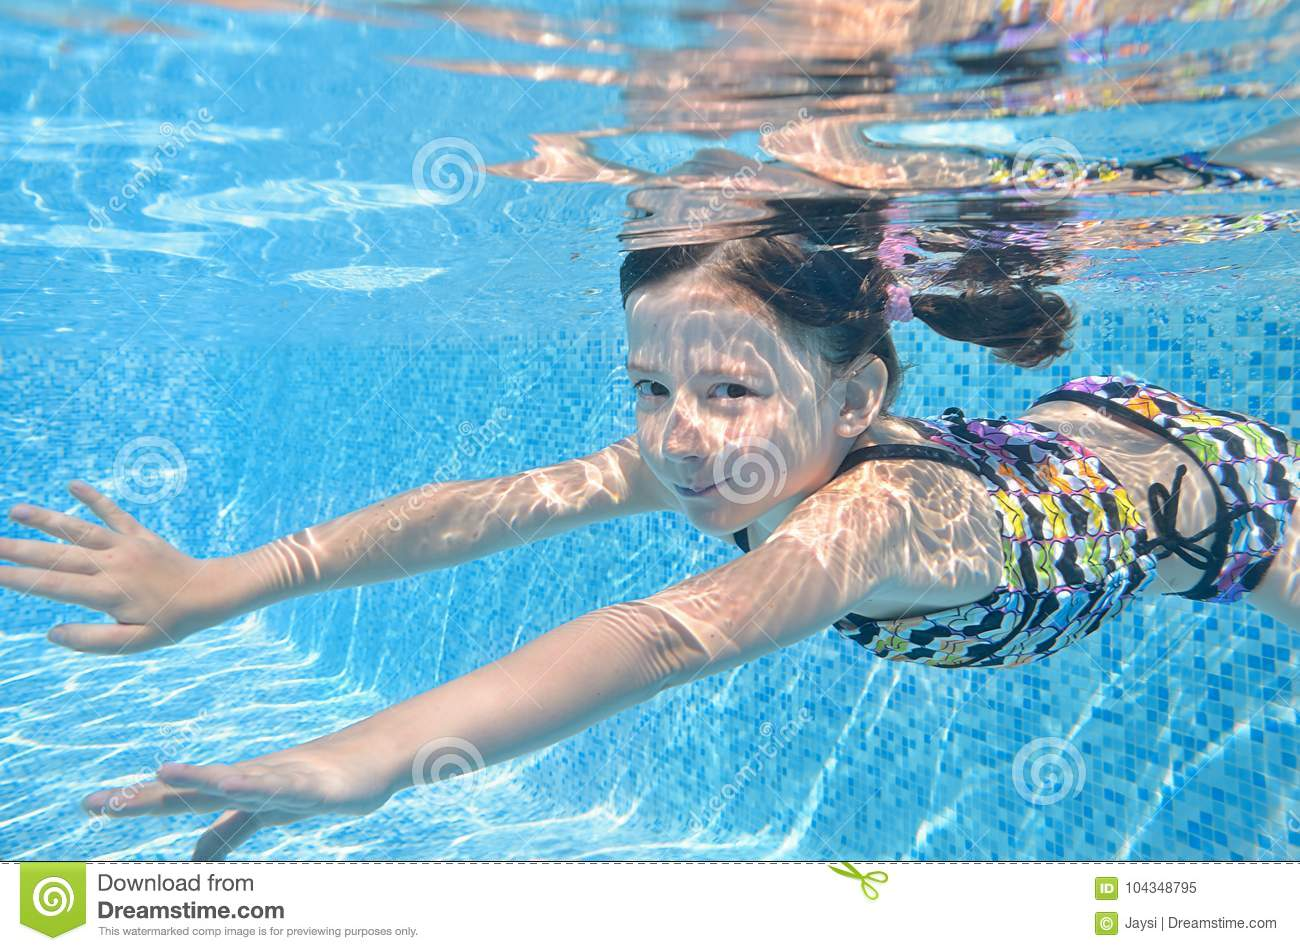 Child swims in pool underwater, happy girl dives and has fun under water, kid fitness and sport on family vacation